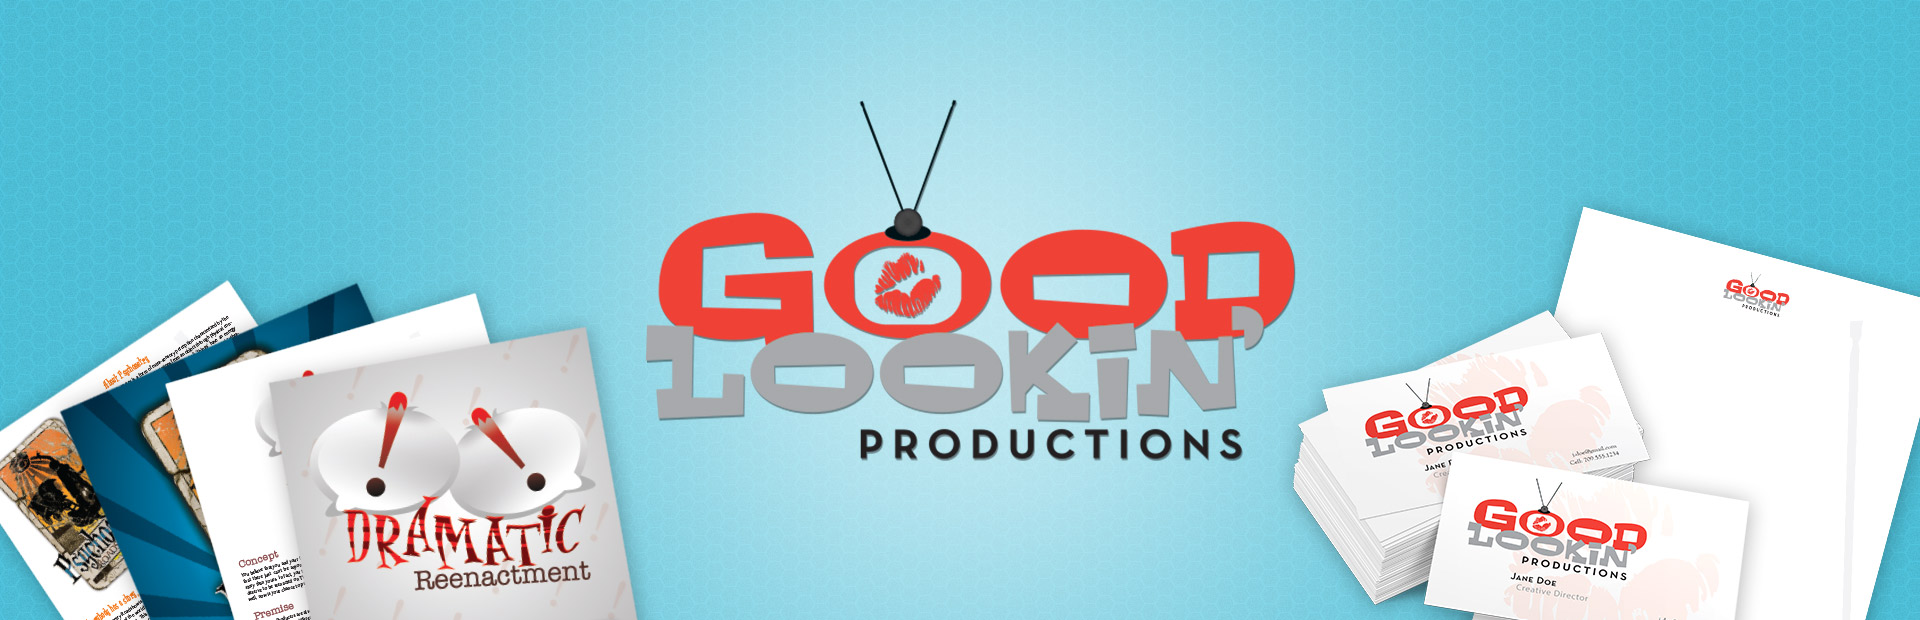 Branding for Good Lookin' Productions